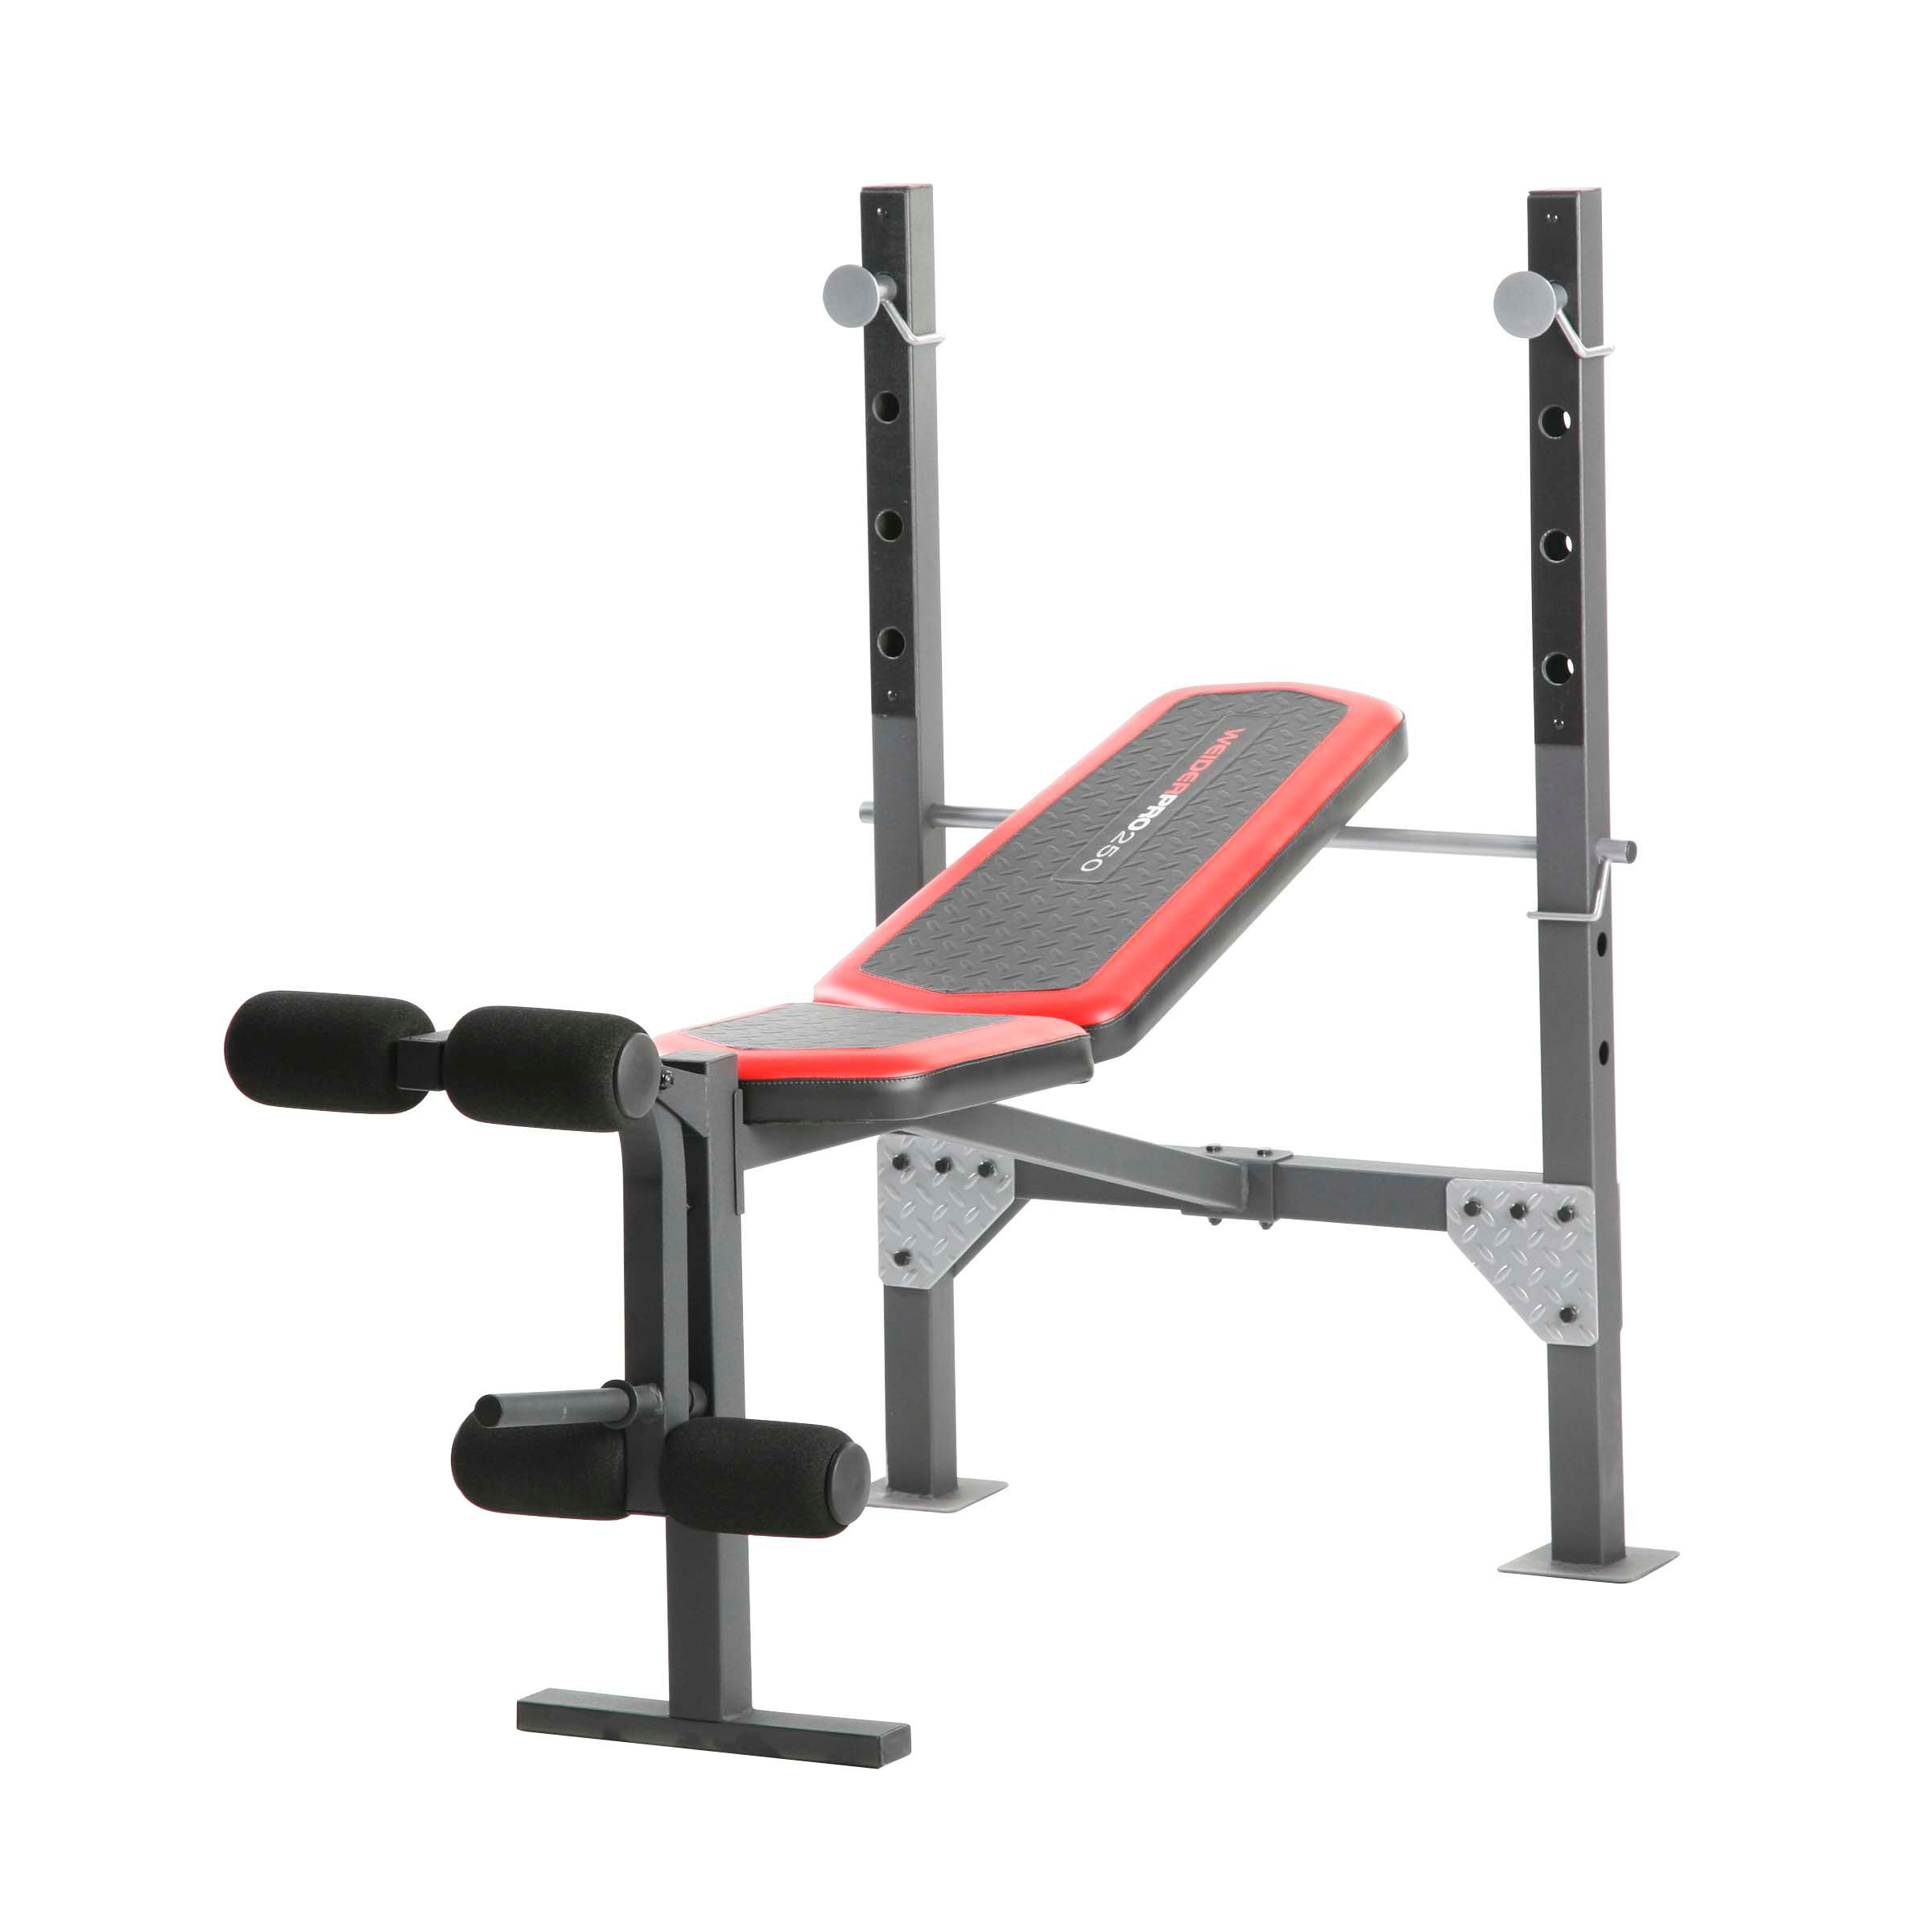 Weider 15707 Pro 250 Bench Sears Outlet